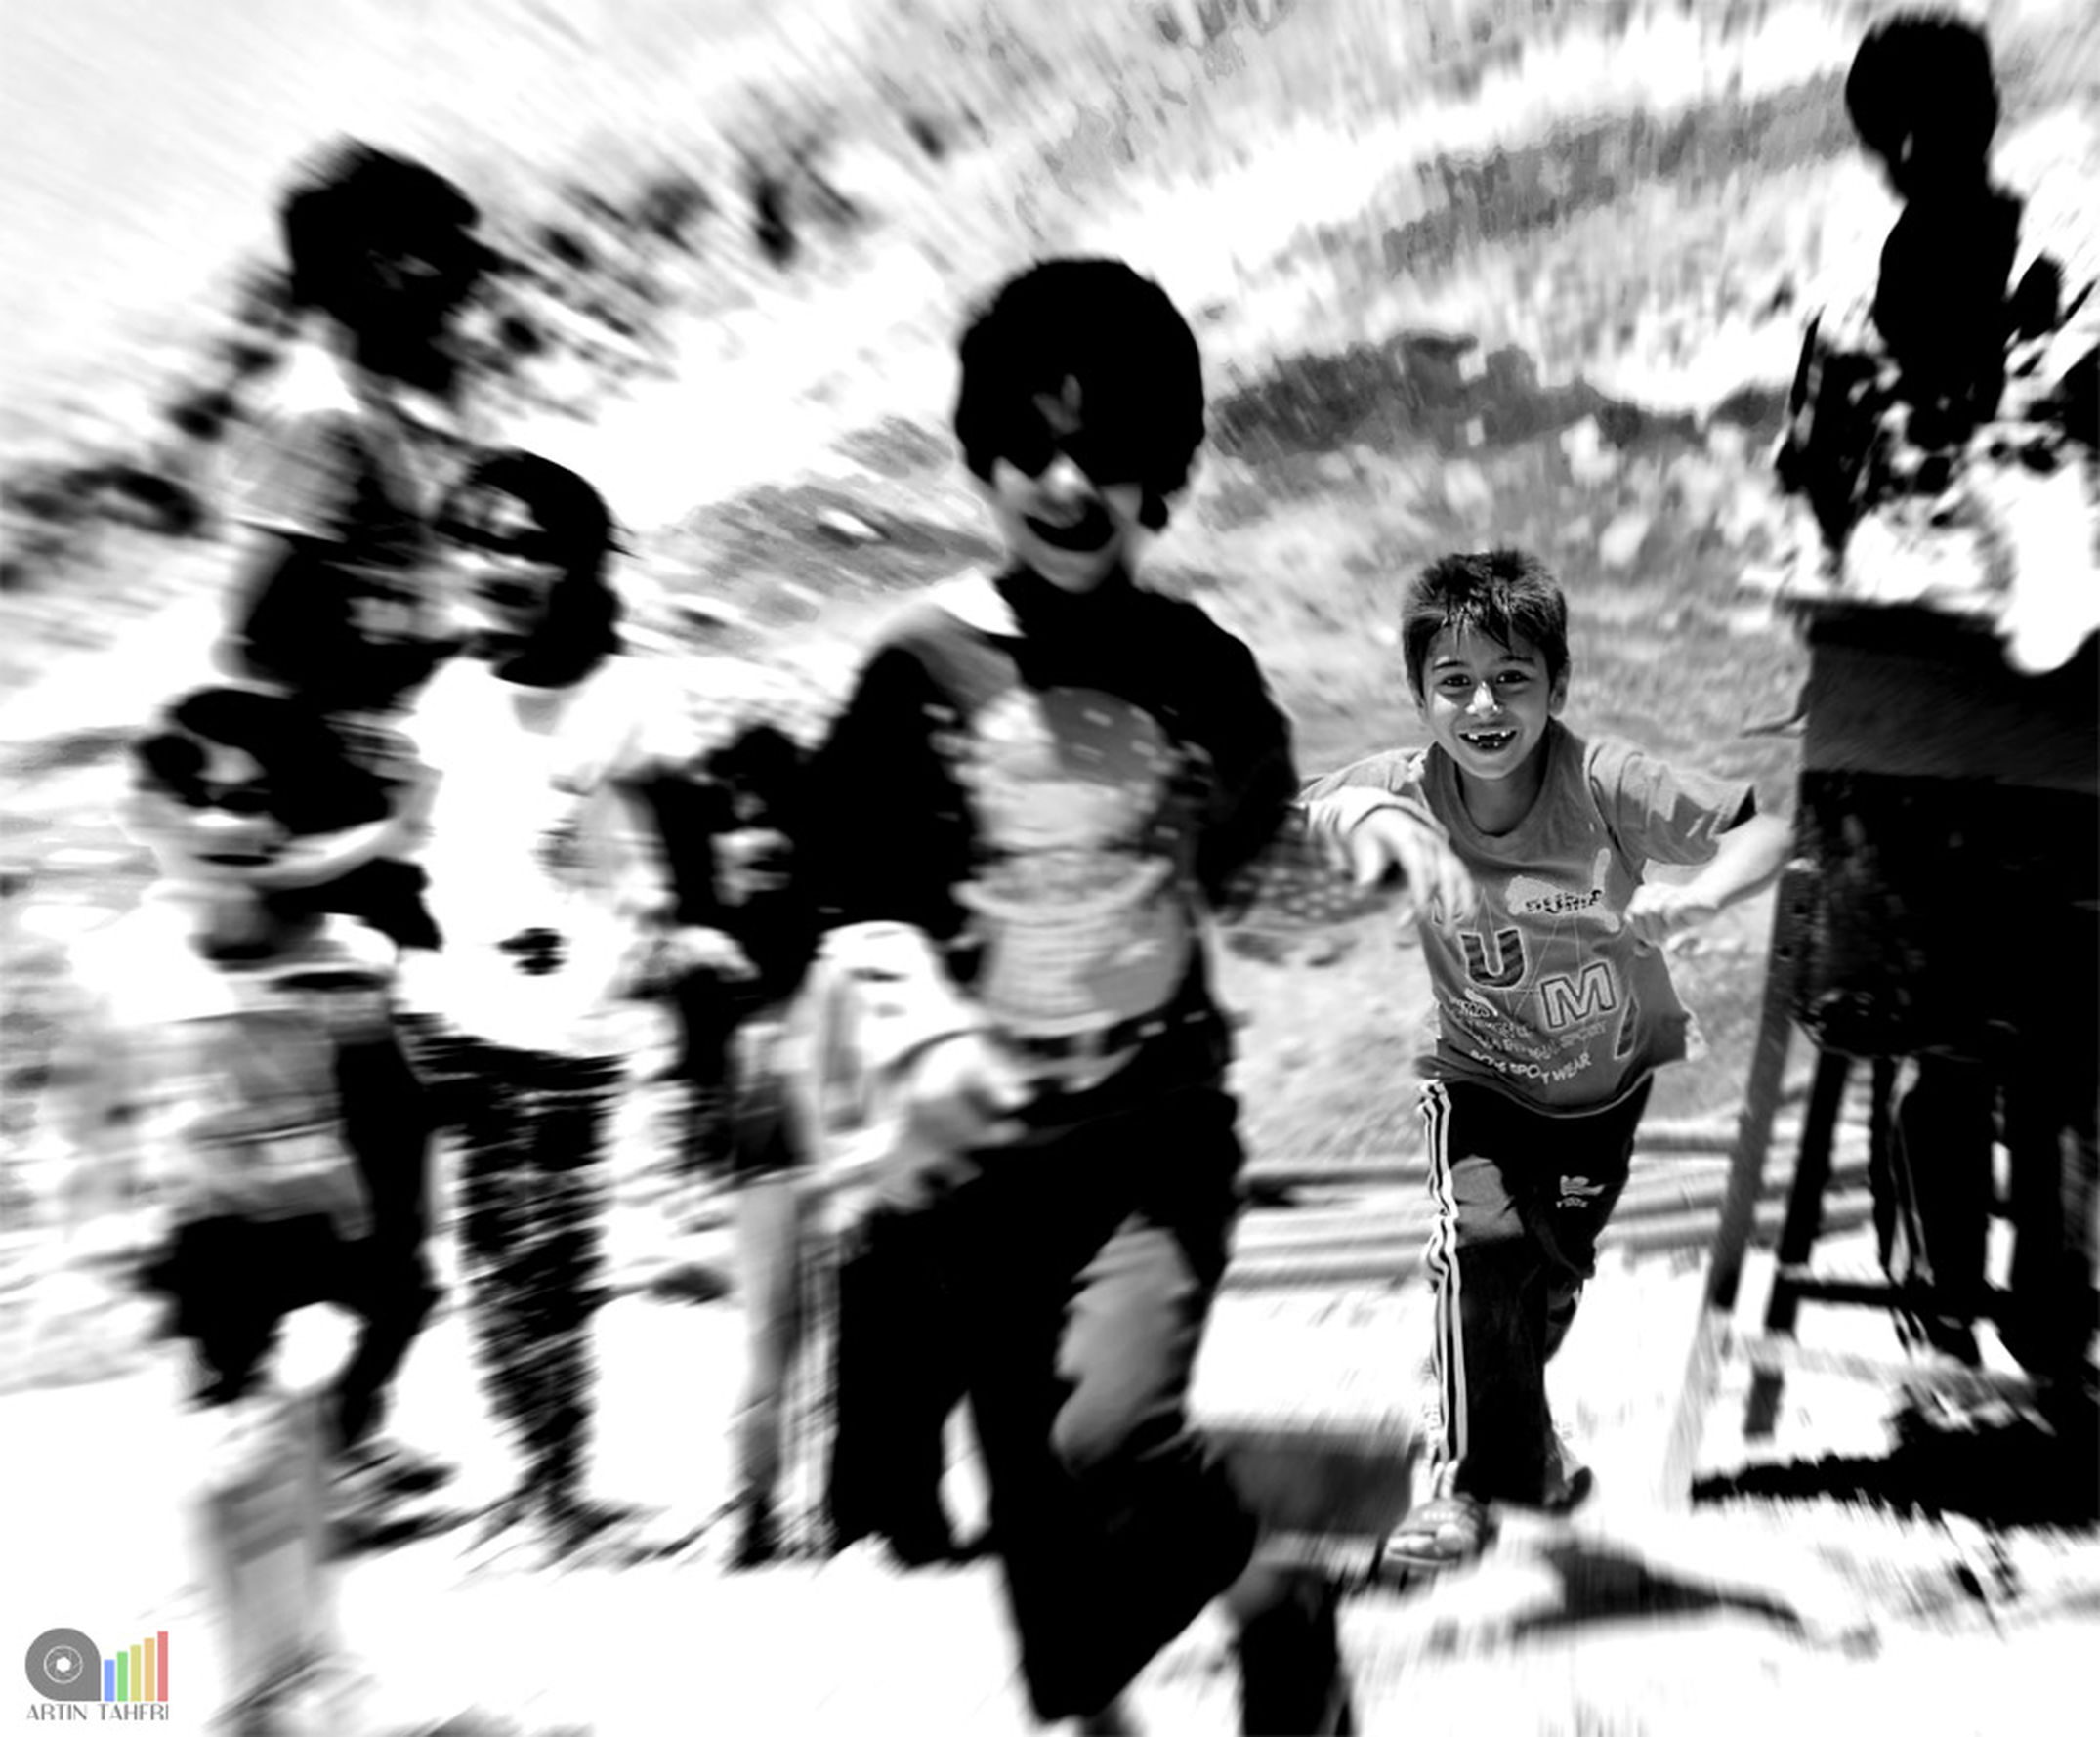 Blurred Motion Motion Real People Long Exposure People Young Adult Happiness Happy Child Children Play Playing Focus On Background My Point Of View Happy Child  بچه سیاه_وسفید سیاه_سفید سیاه و سفید Blackandwhite Black And White Black & White Blackandwhite Photography Black And White Photography Black&white